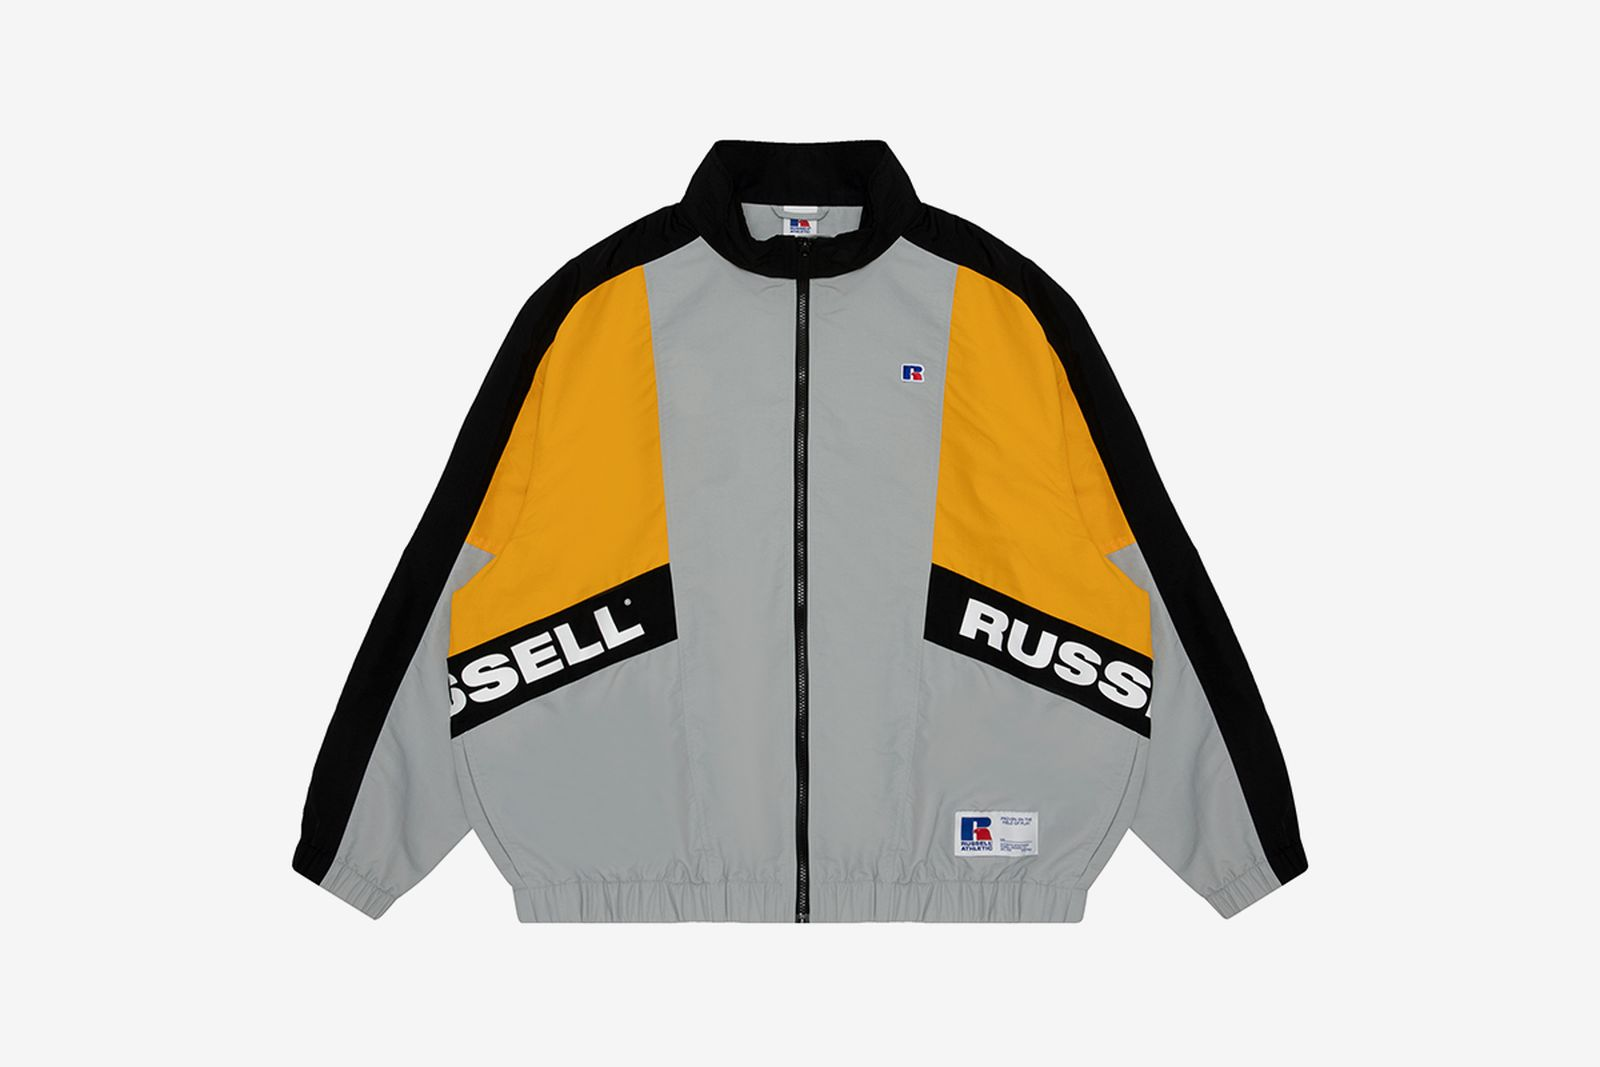 aape-russel-sport-product-01